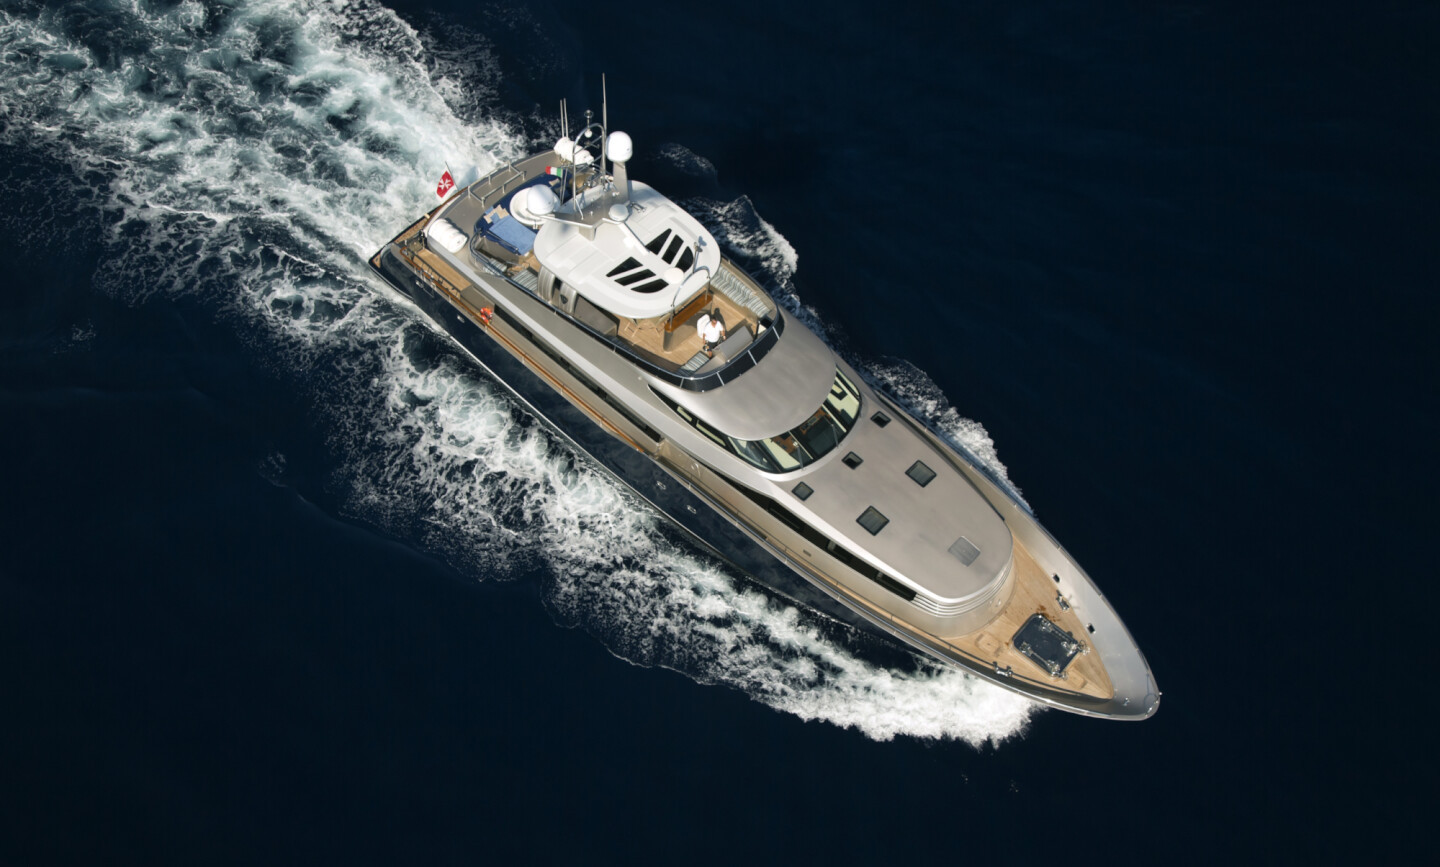 Xo Of The Seas yacht for Sale 2